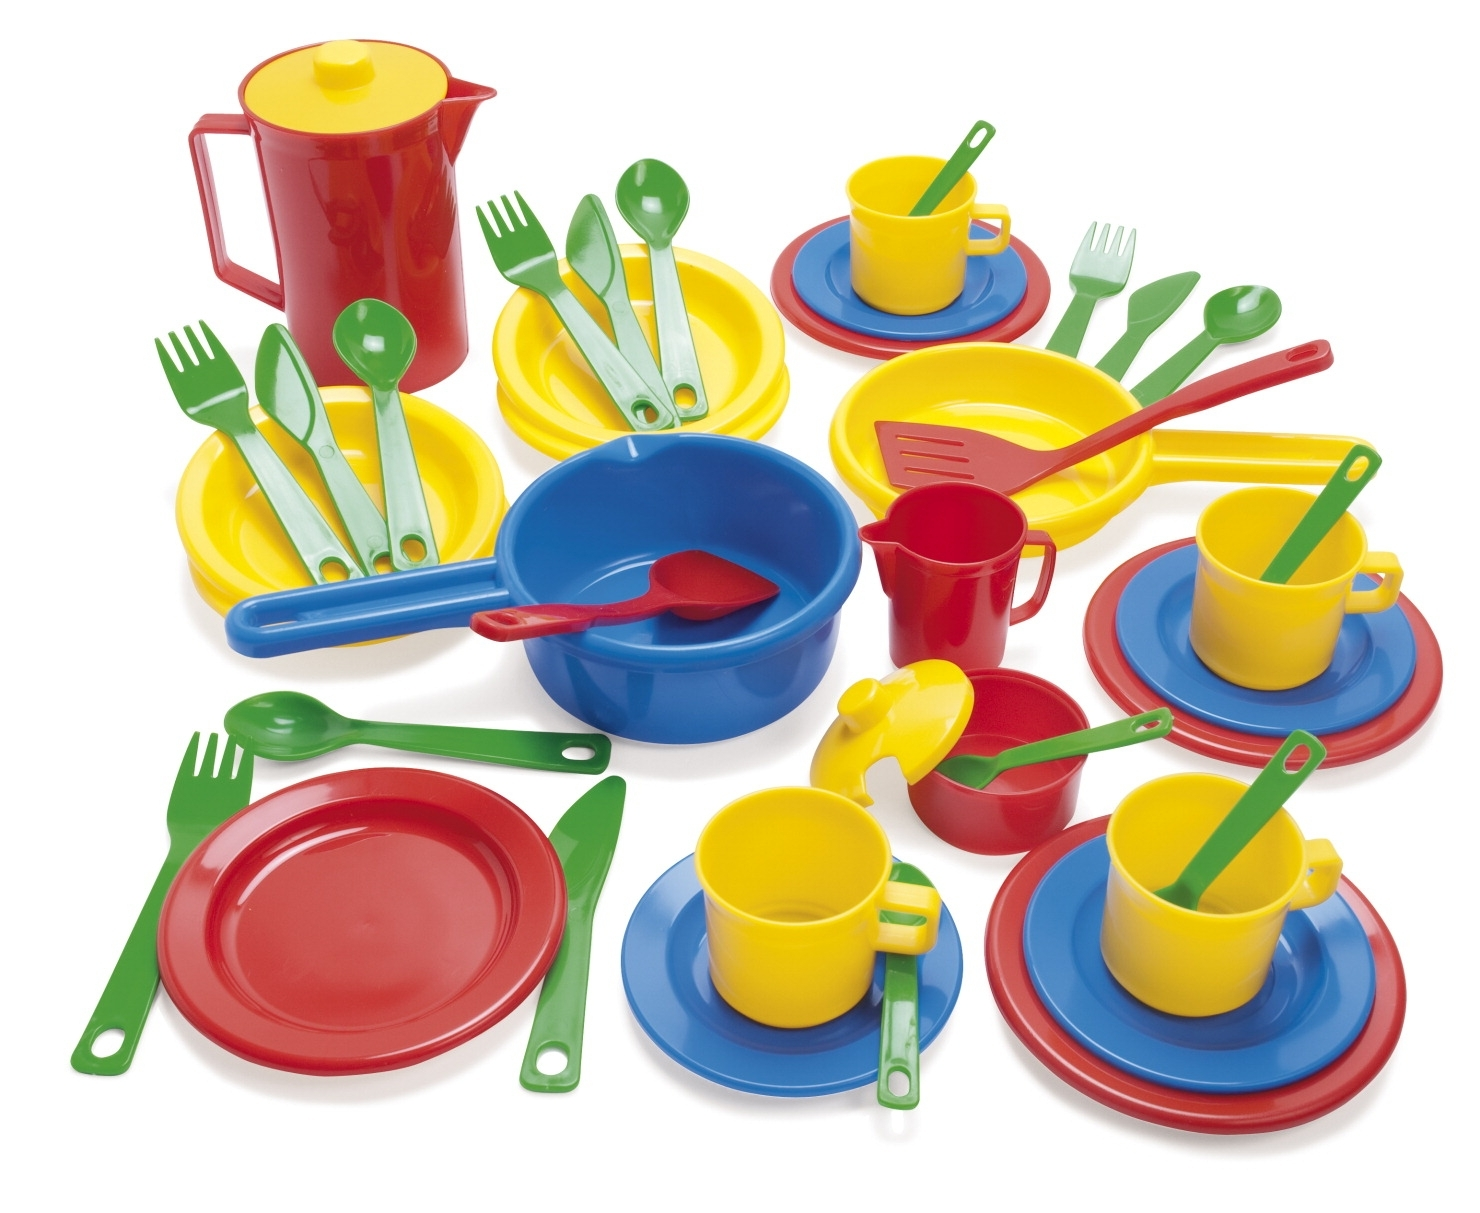 Learning: Play Dramatic Play Kitchen Area Dishes & Cookware - 075047 - Dantoy 41-piece Toddler Cookware And Dish Set 075047